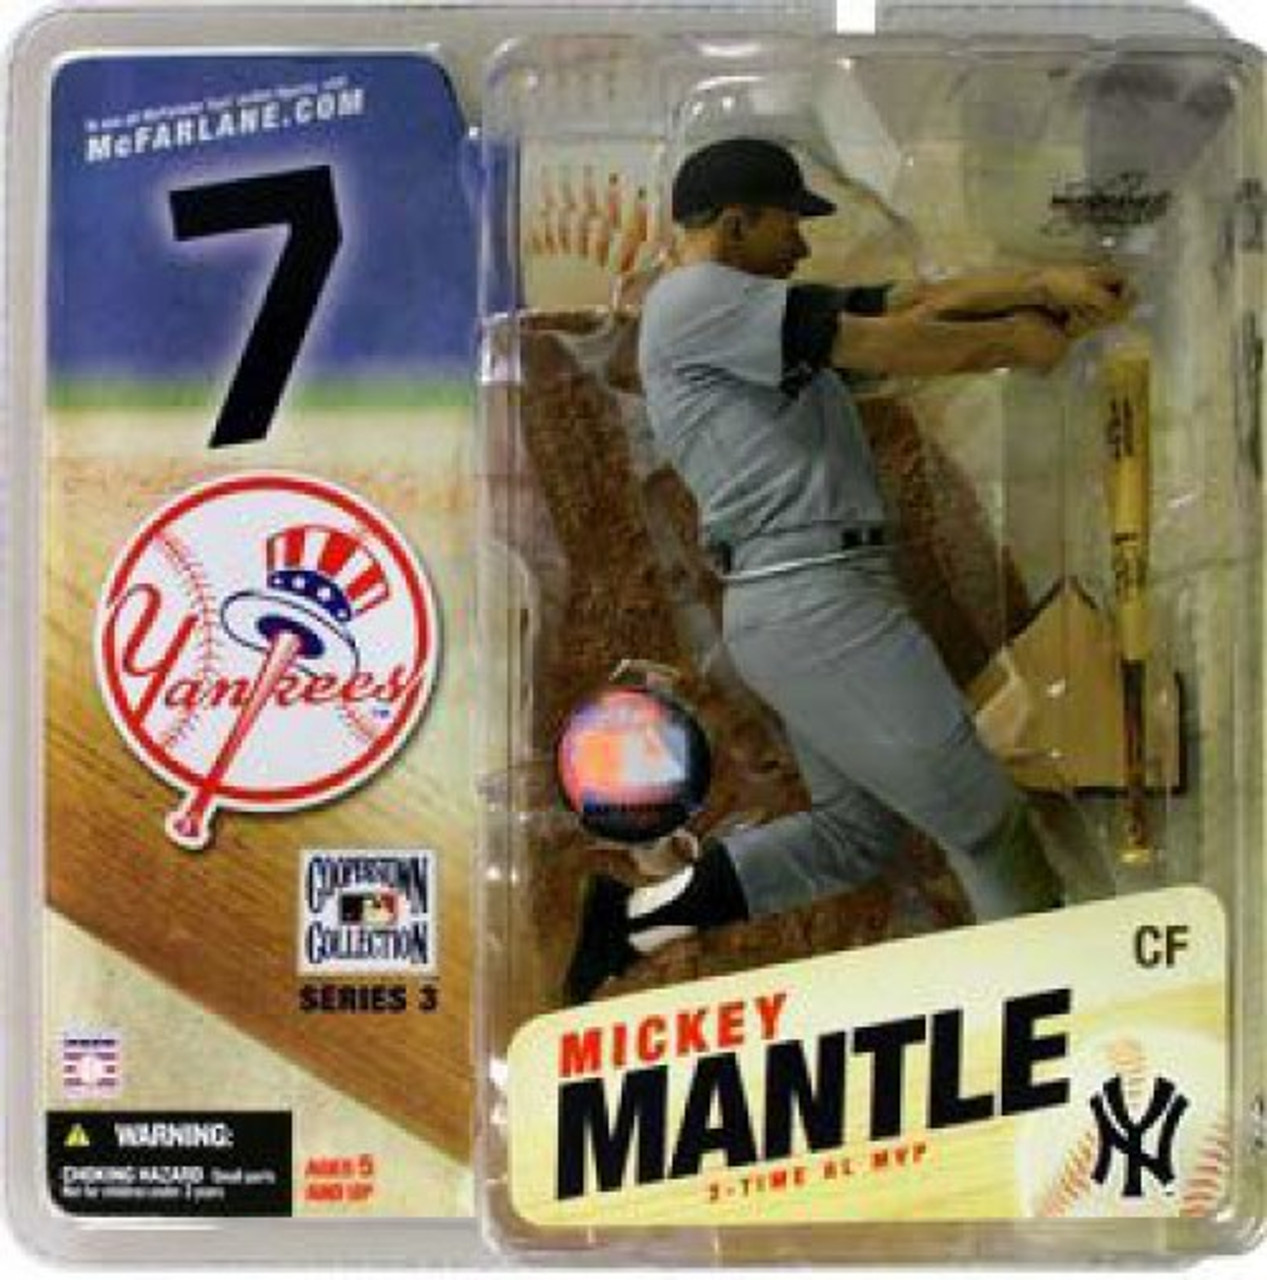 NEW~MICKEY MANTLE~2006 MCFARLANE~COOPERSTOWN COLLECTION SERIES 3-NY YANKEES